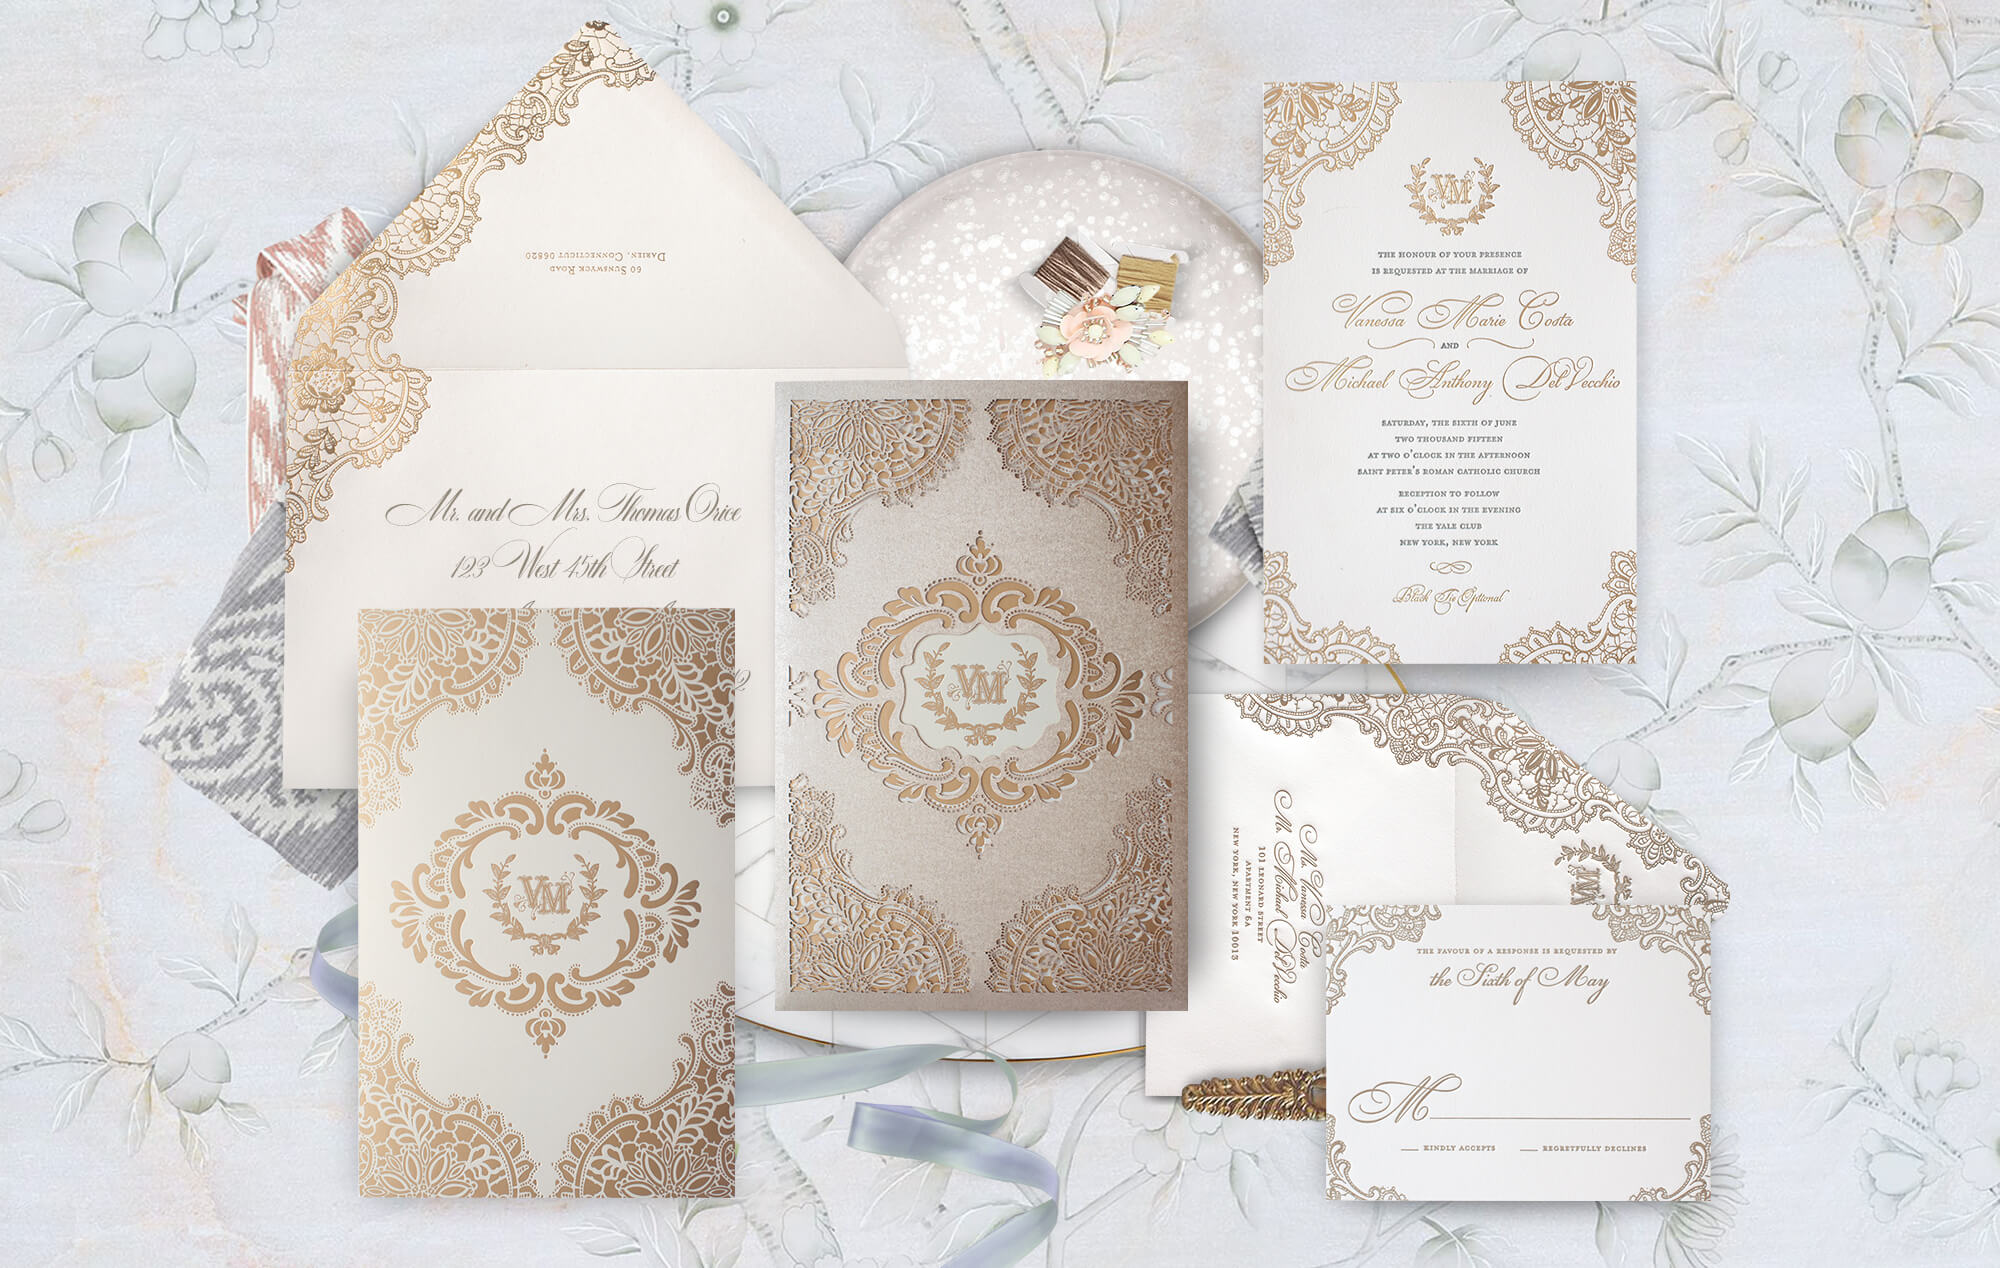 Gold laser cut ornate wedding invitation